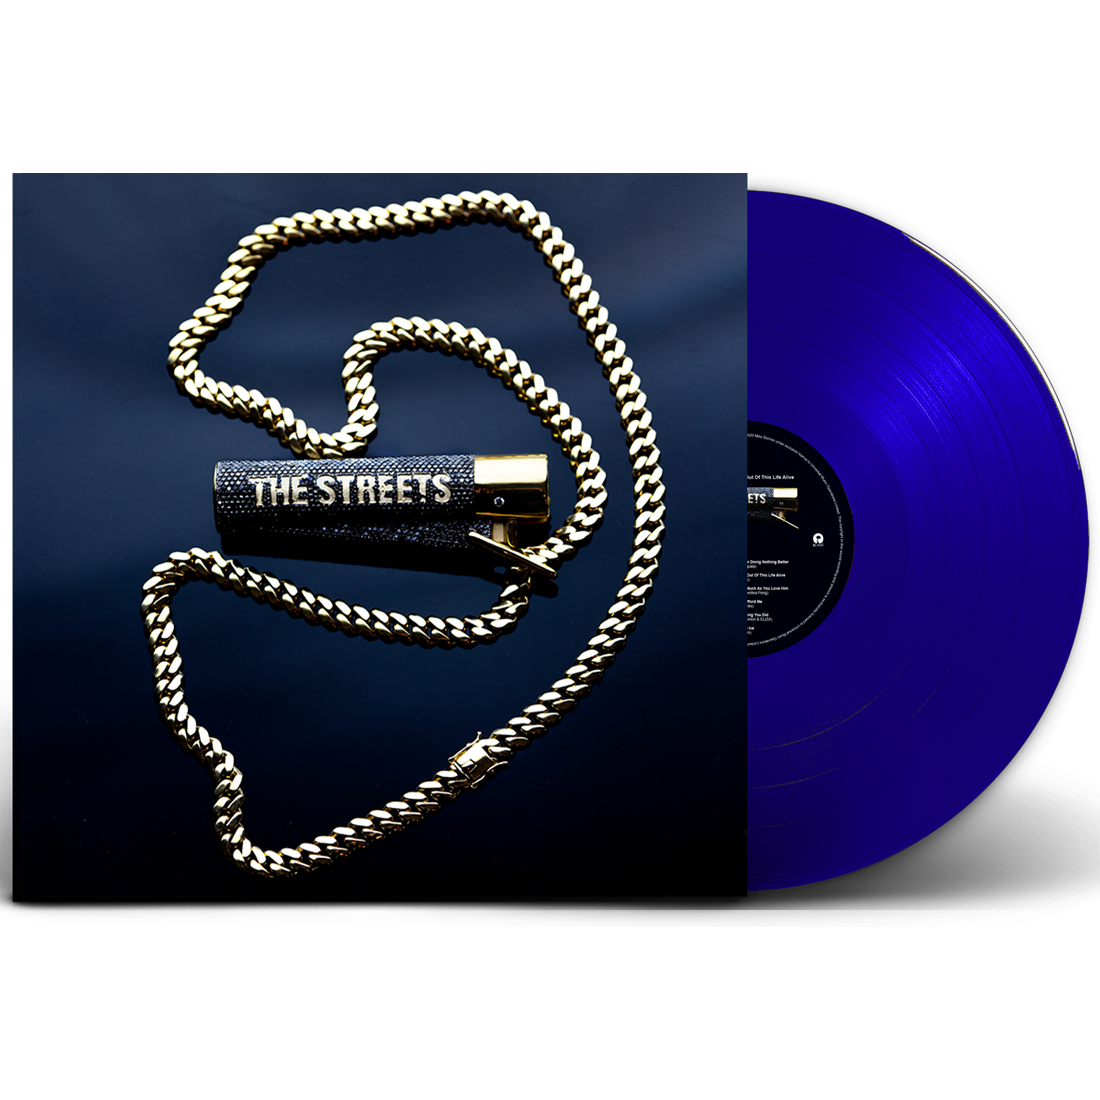 The Streets - None Of Us Are Getting Out This Life Alive Exclusive 180g Blue Colour Vinyl Record Album